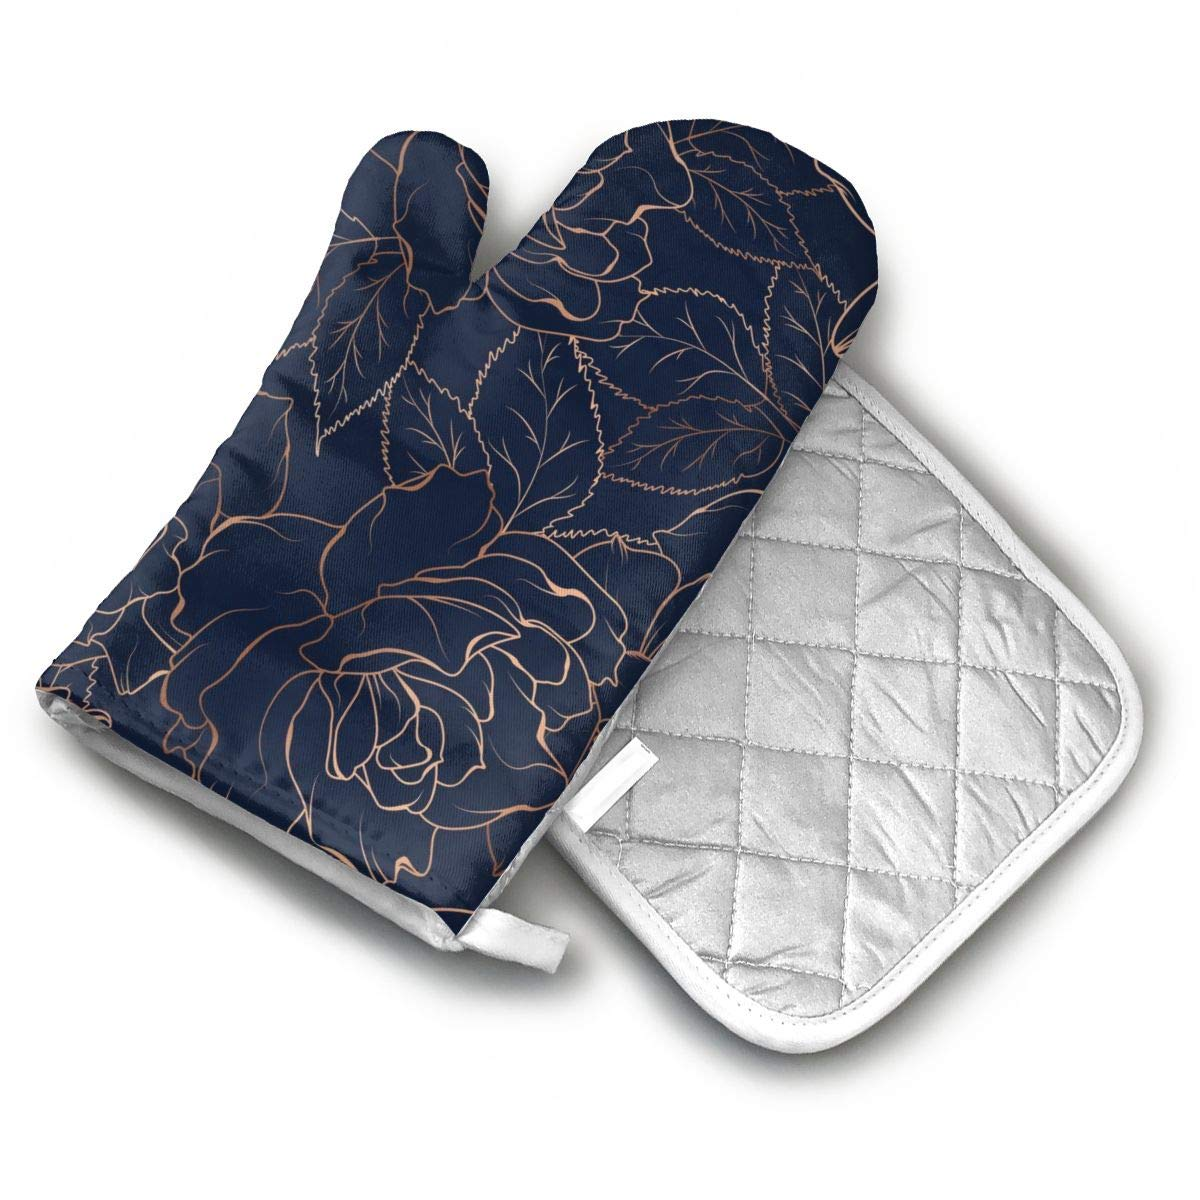 CA6ZZ.CO.LTD Non-Slip Oven Mitt Set Gold Rose in Navy Blue Pattern Heat Resistant Oven Mitts & Pot Holders for Kitchen,Oven Gloves for BBQ,Baking, Grilling,Handle Hot Oven/Cooking Items Safely